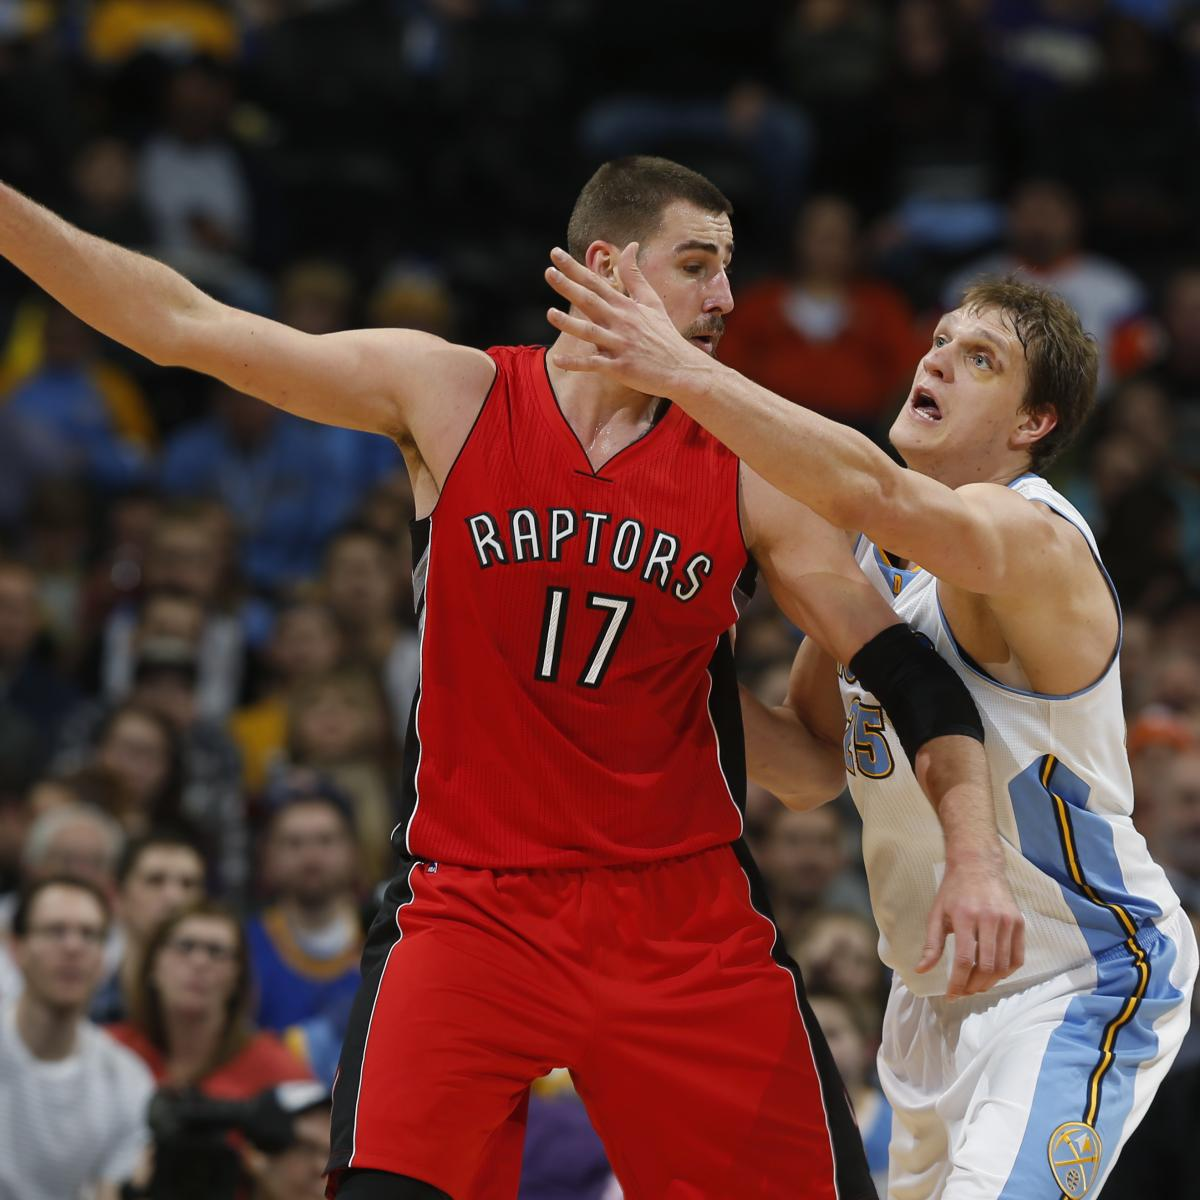 Toronto Raptors Vs. Denver Nuggets 12/28/14: Video